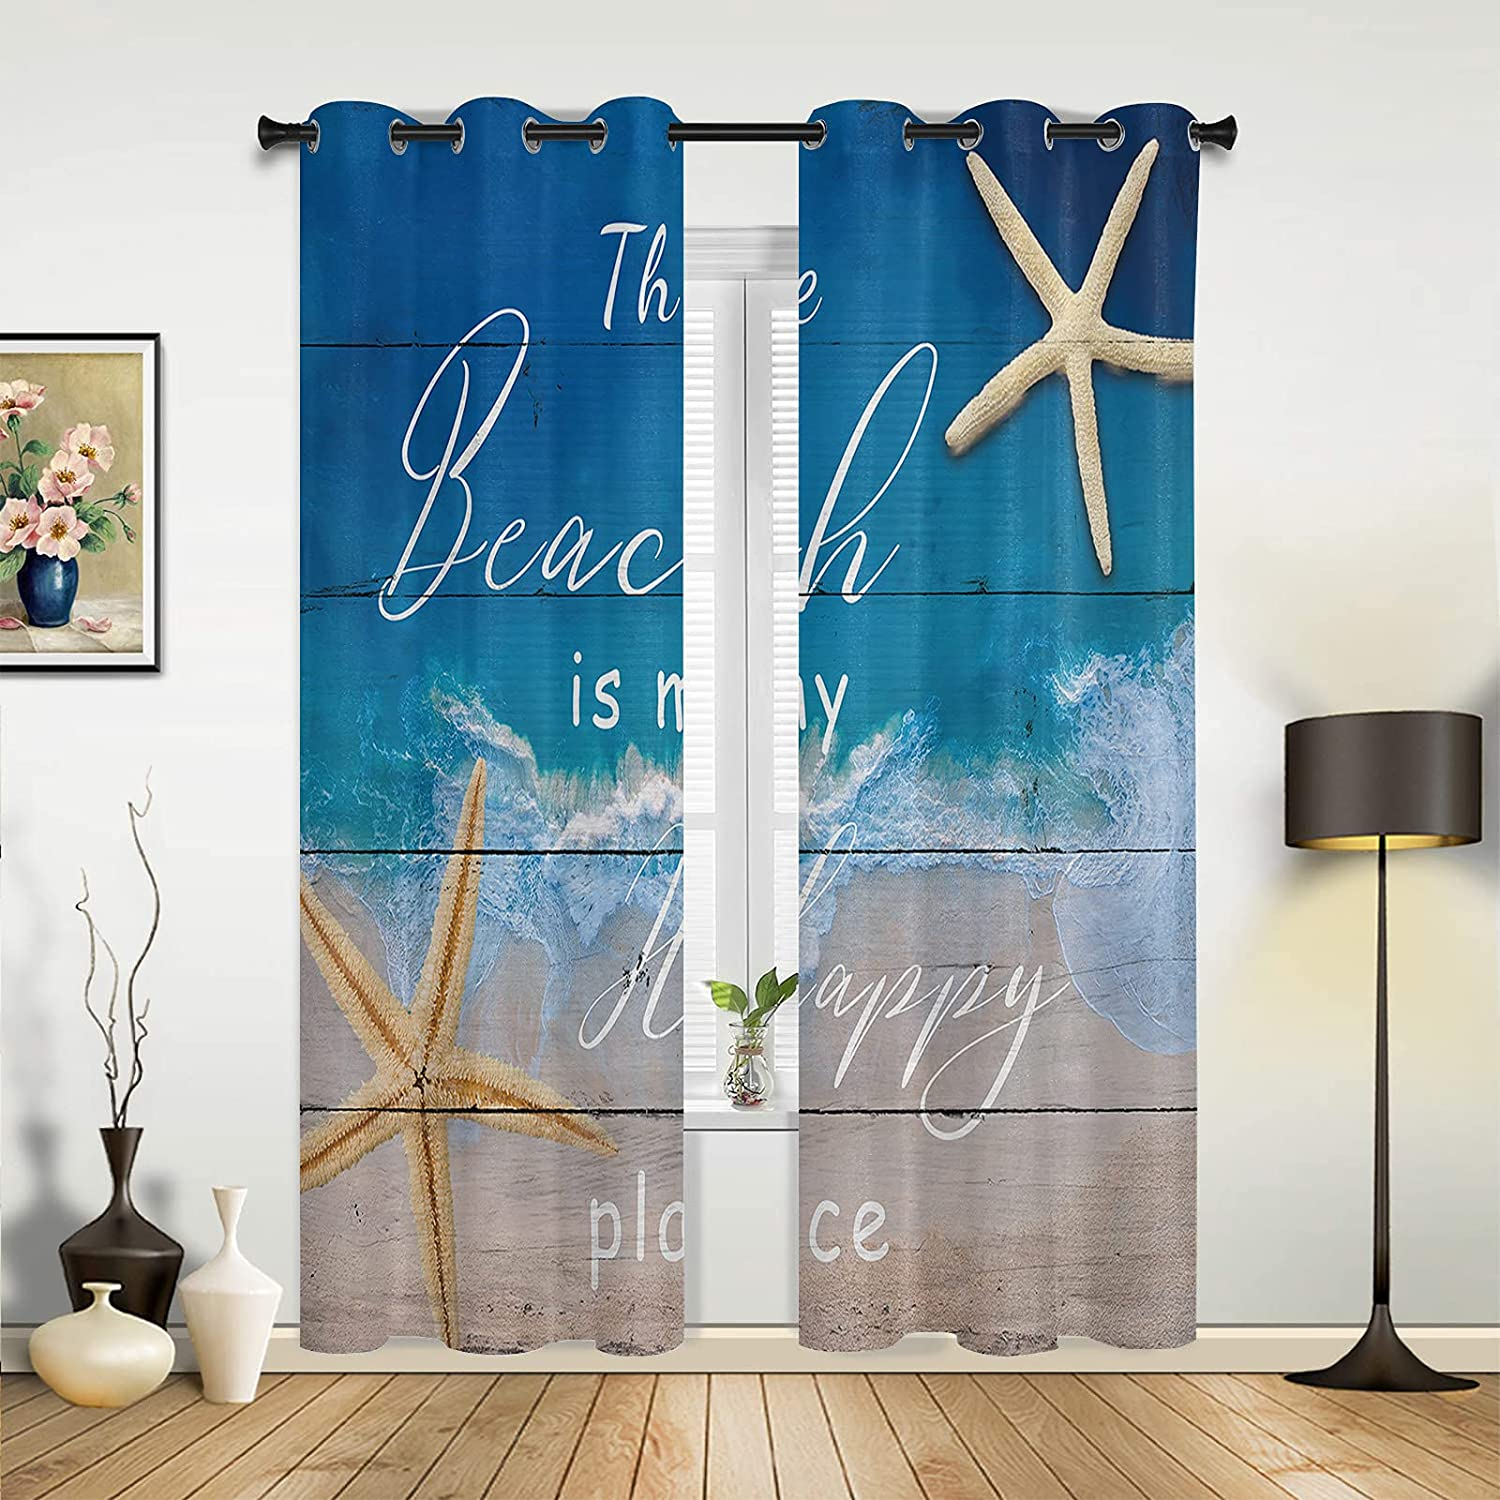 Window Sheer Curtains for Bedroom Purchase Dallas Mall Living Summer Room Beach My is